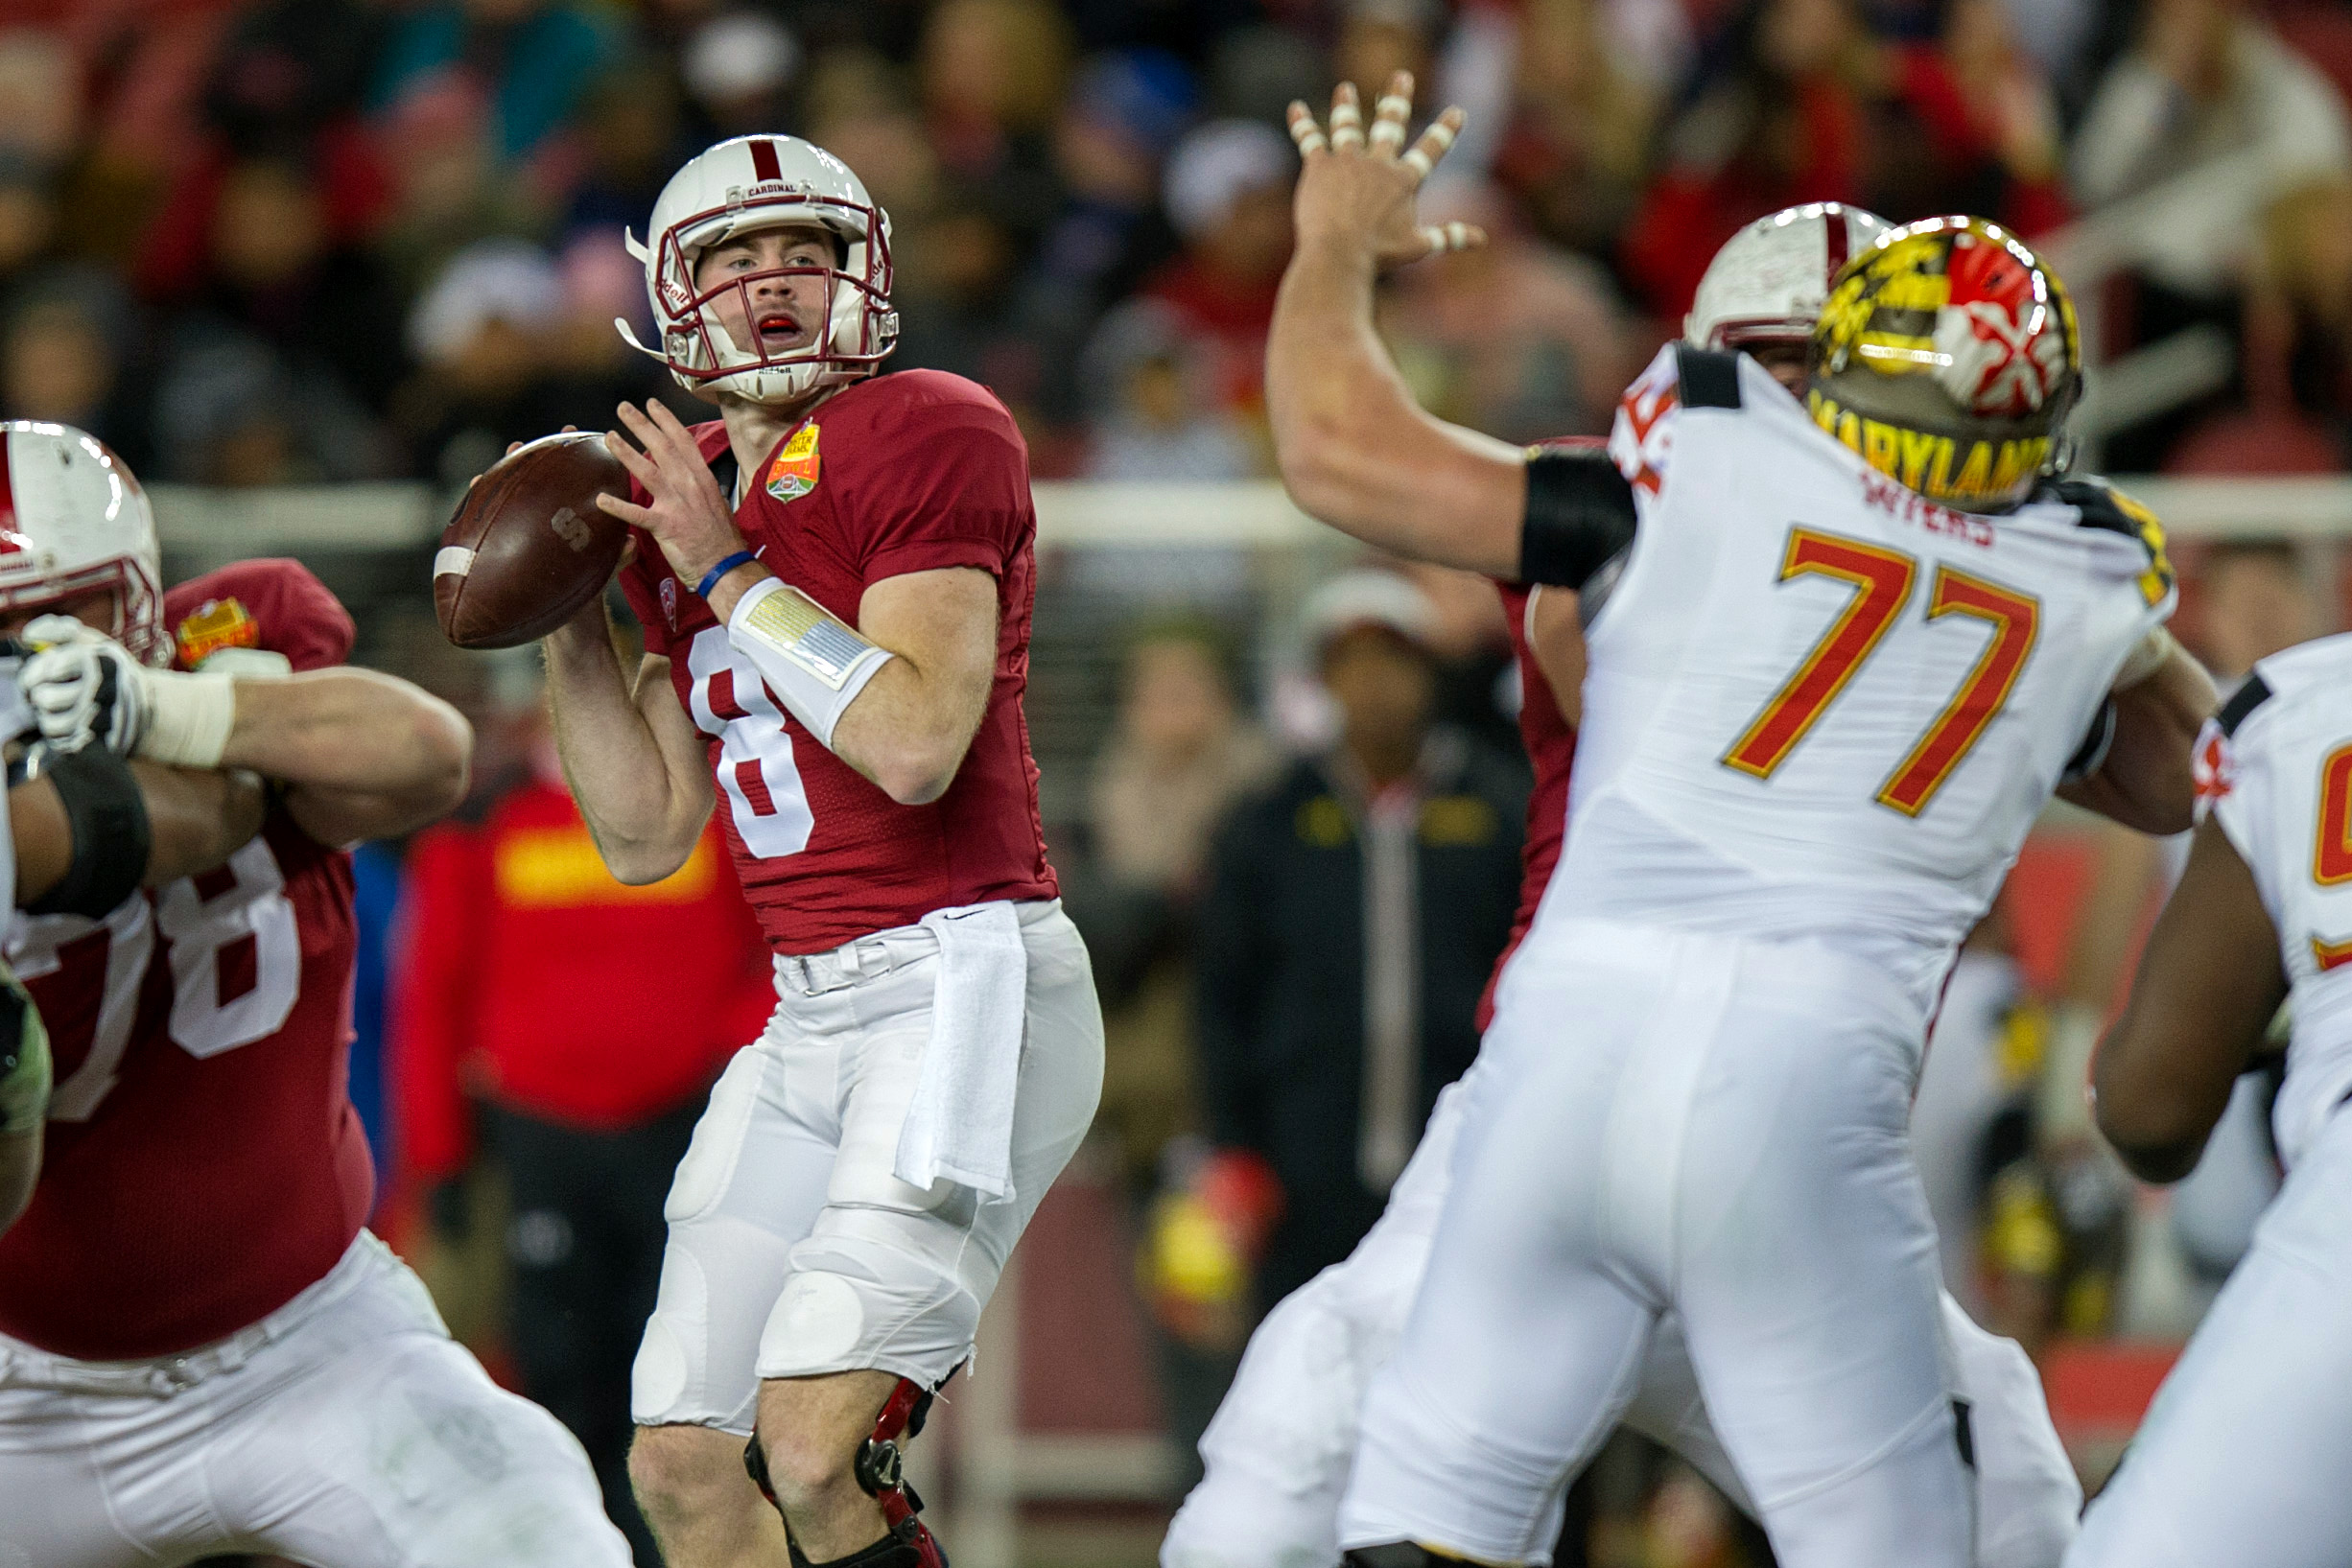 The Pac-12 was relieved when Andrew Luck went pro. Then along came Kevin Hogan.